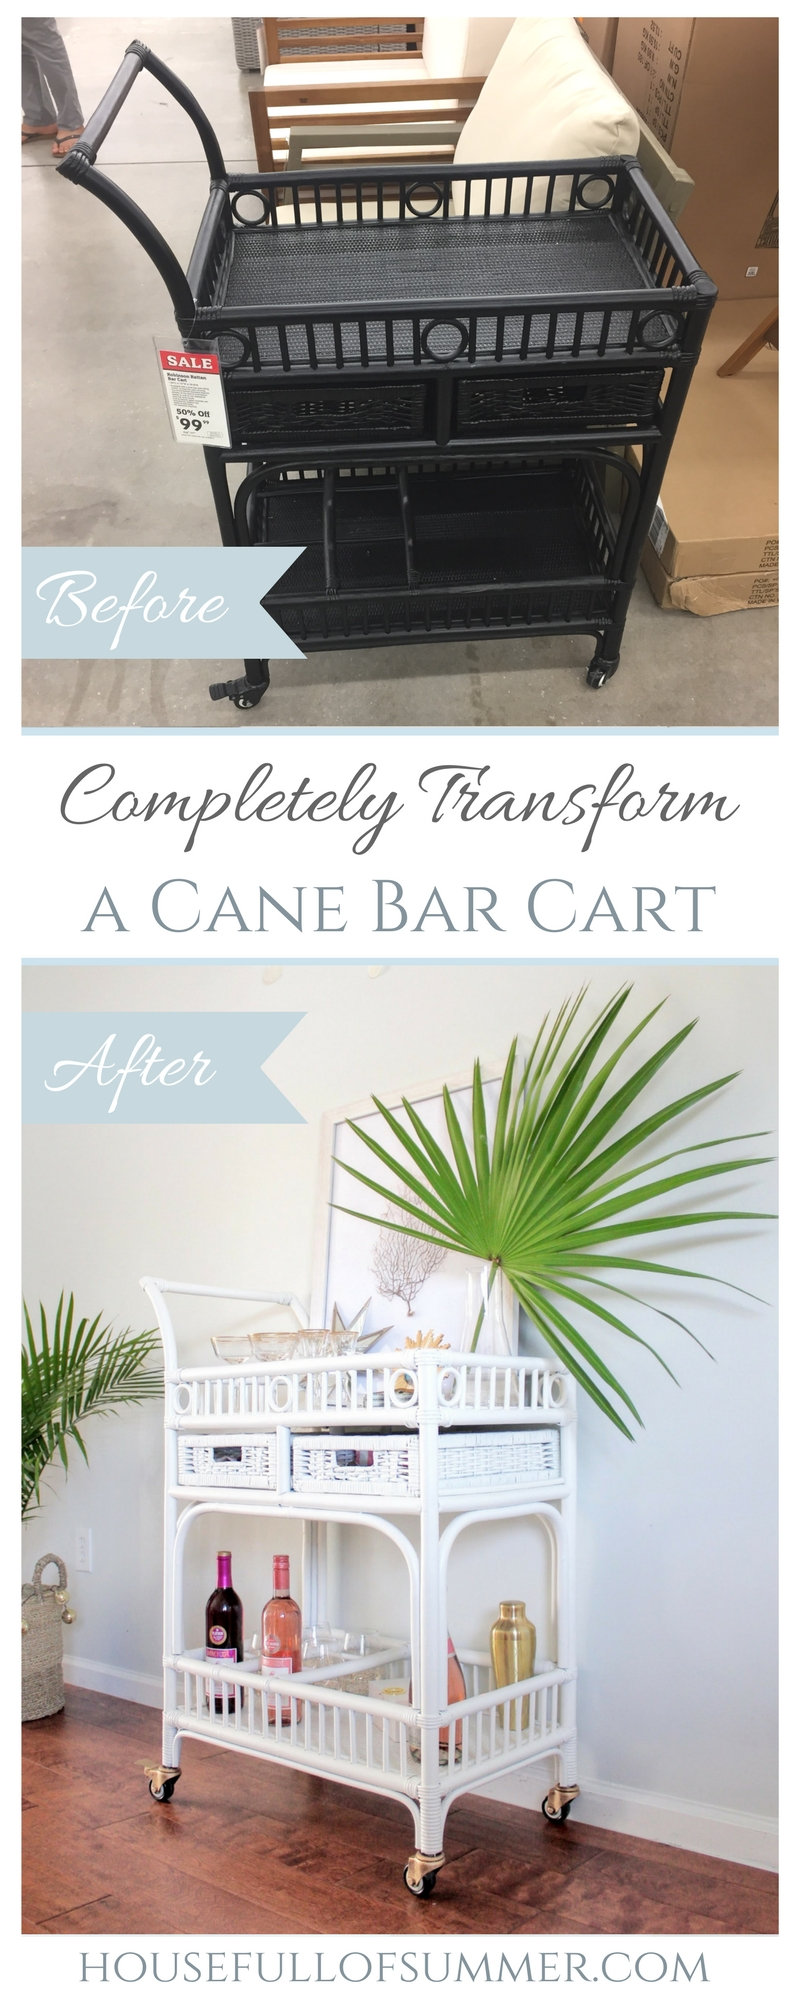 Completely Transform a Cane Bar Cart | House Full of Summer - paint sprayer, spray paint, simply white paint, gold wheels, bar cart makeover, DIY furniture painting, coastal home decor, Florida home decor ideas, tropical bar cart styling, top coat, how to use a home paint spray gun, paint wheels gold, rub n' buff, #housefullofsummer #coastaldecor #barcart #homediy